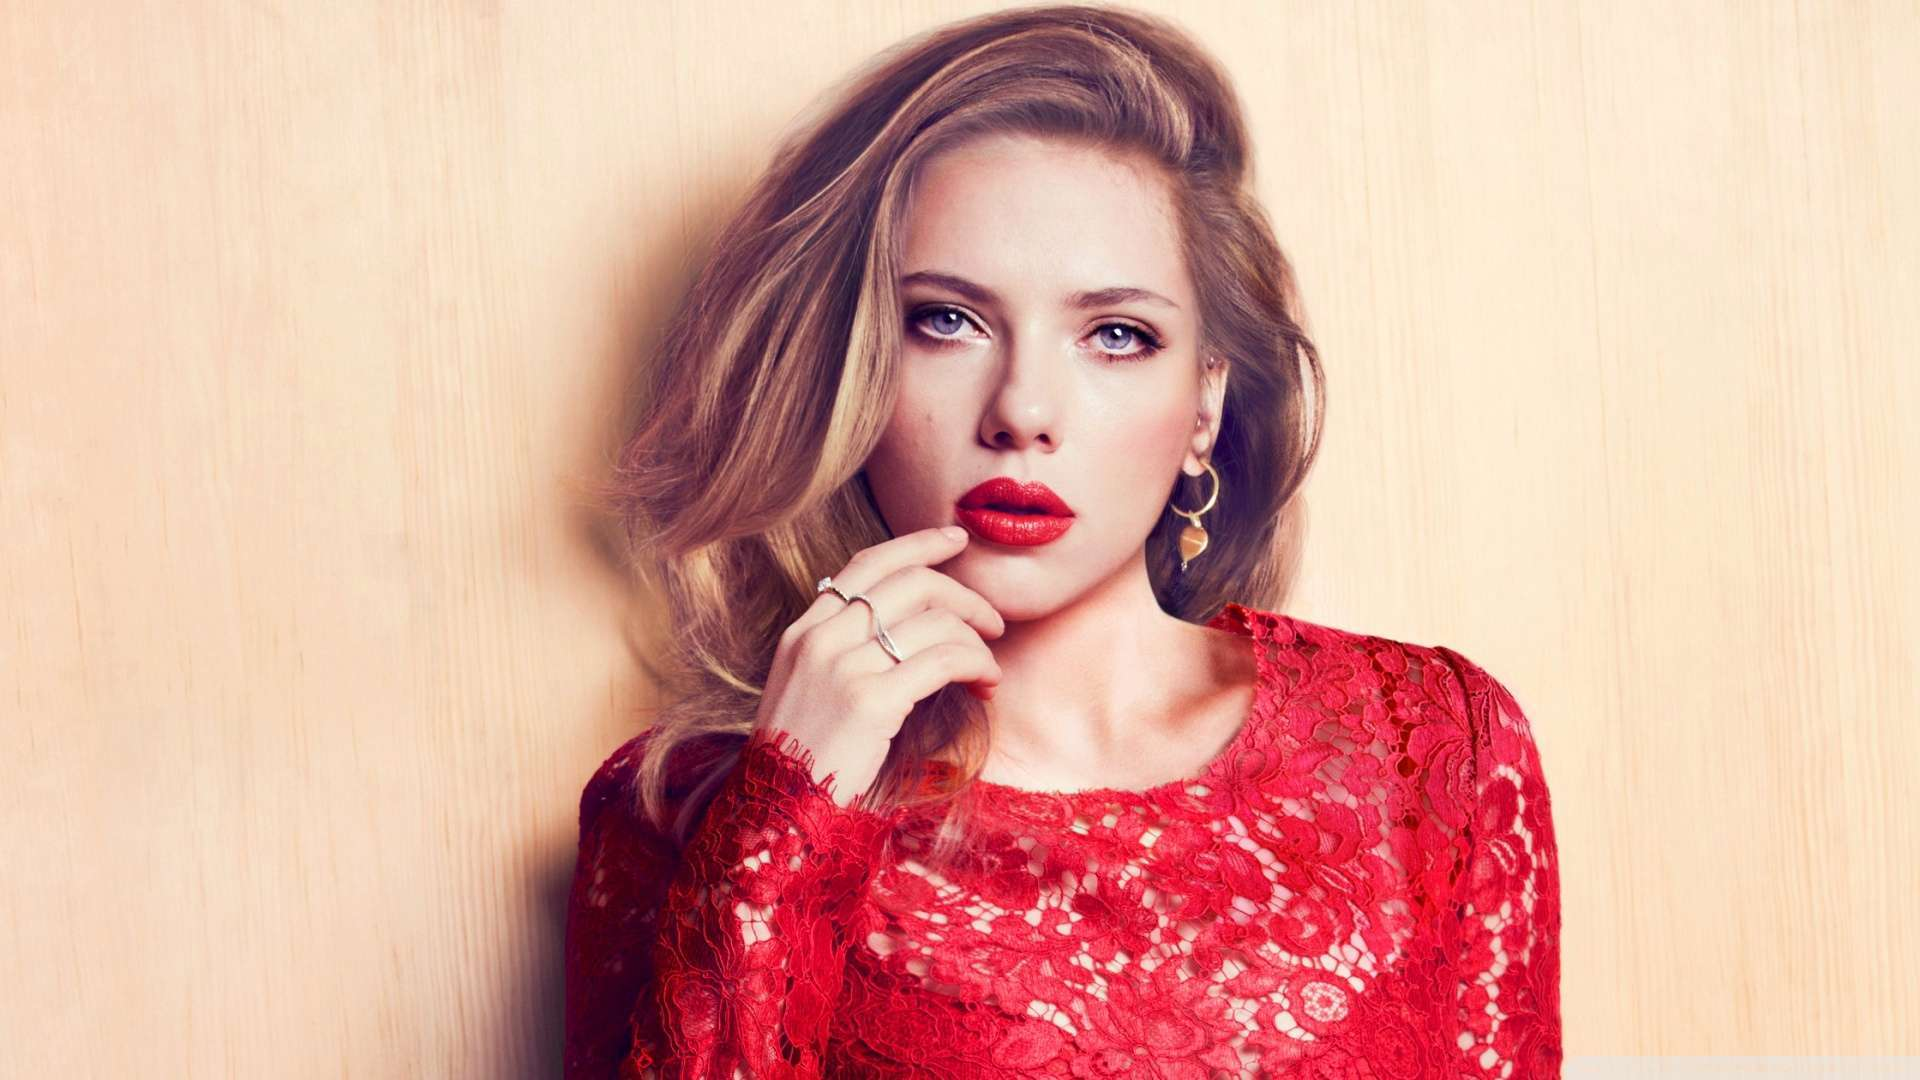 Lovely Red Dress Wallpaper